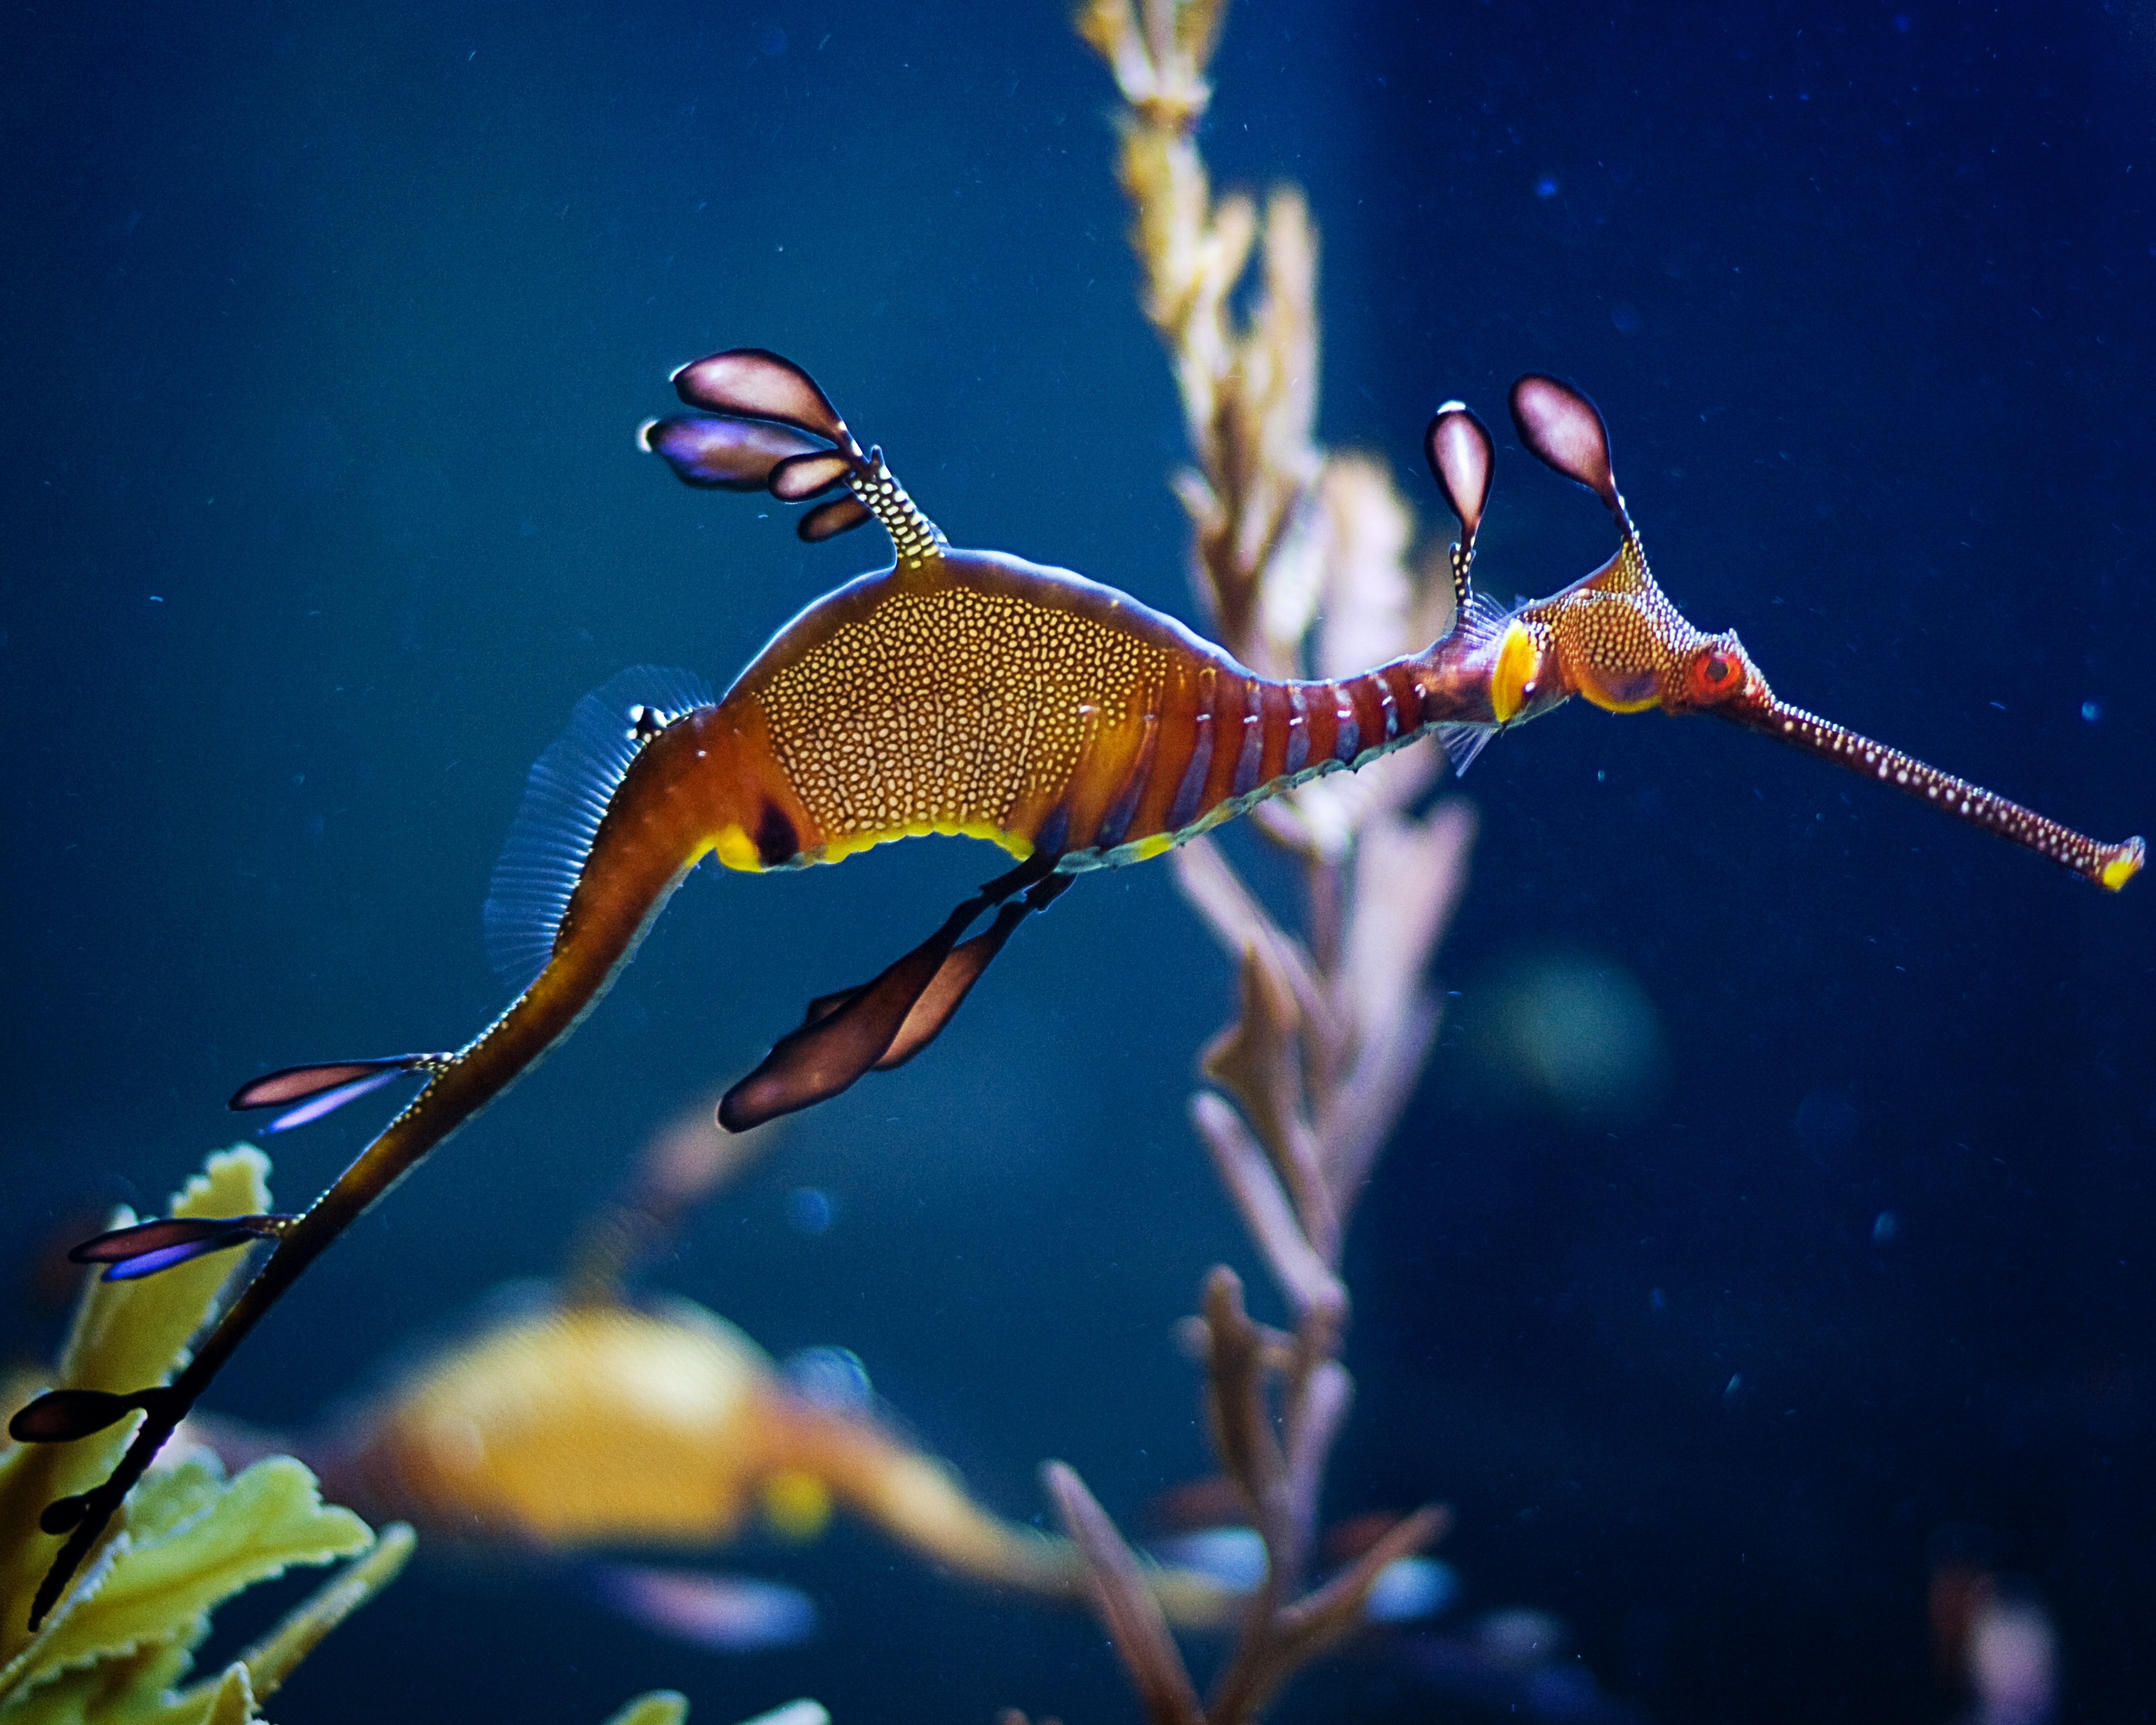 Seadragon at birch